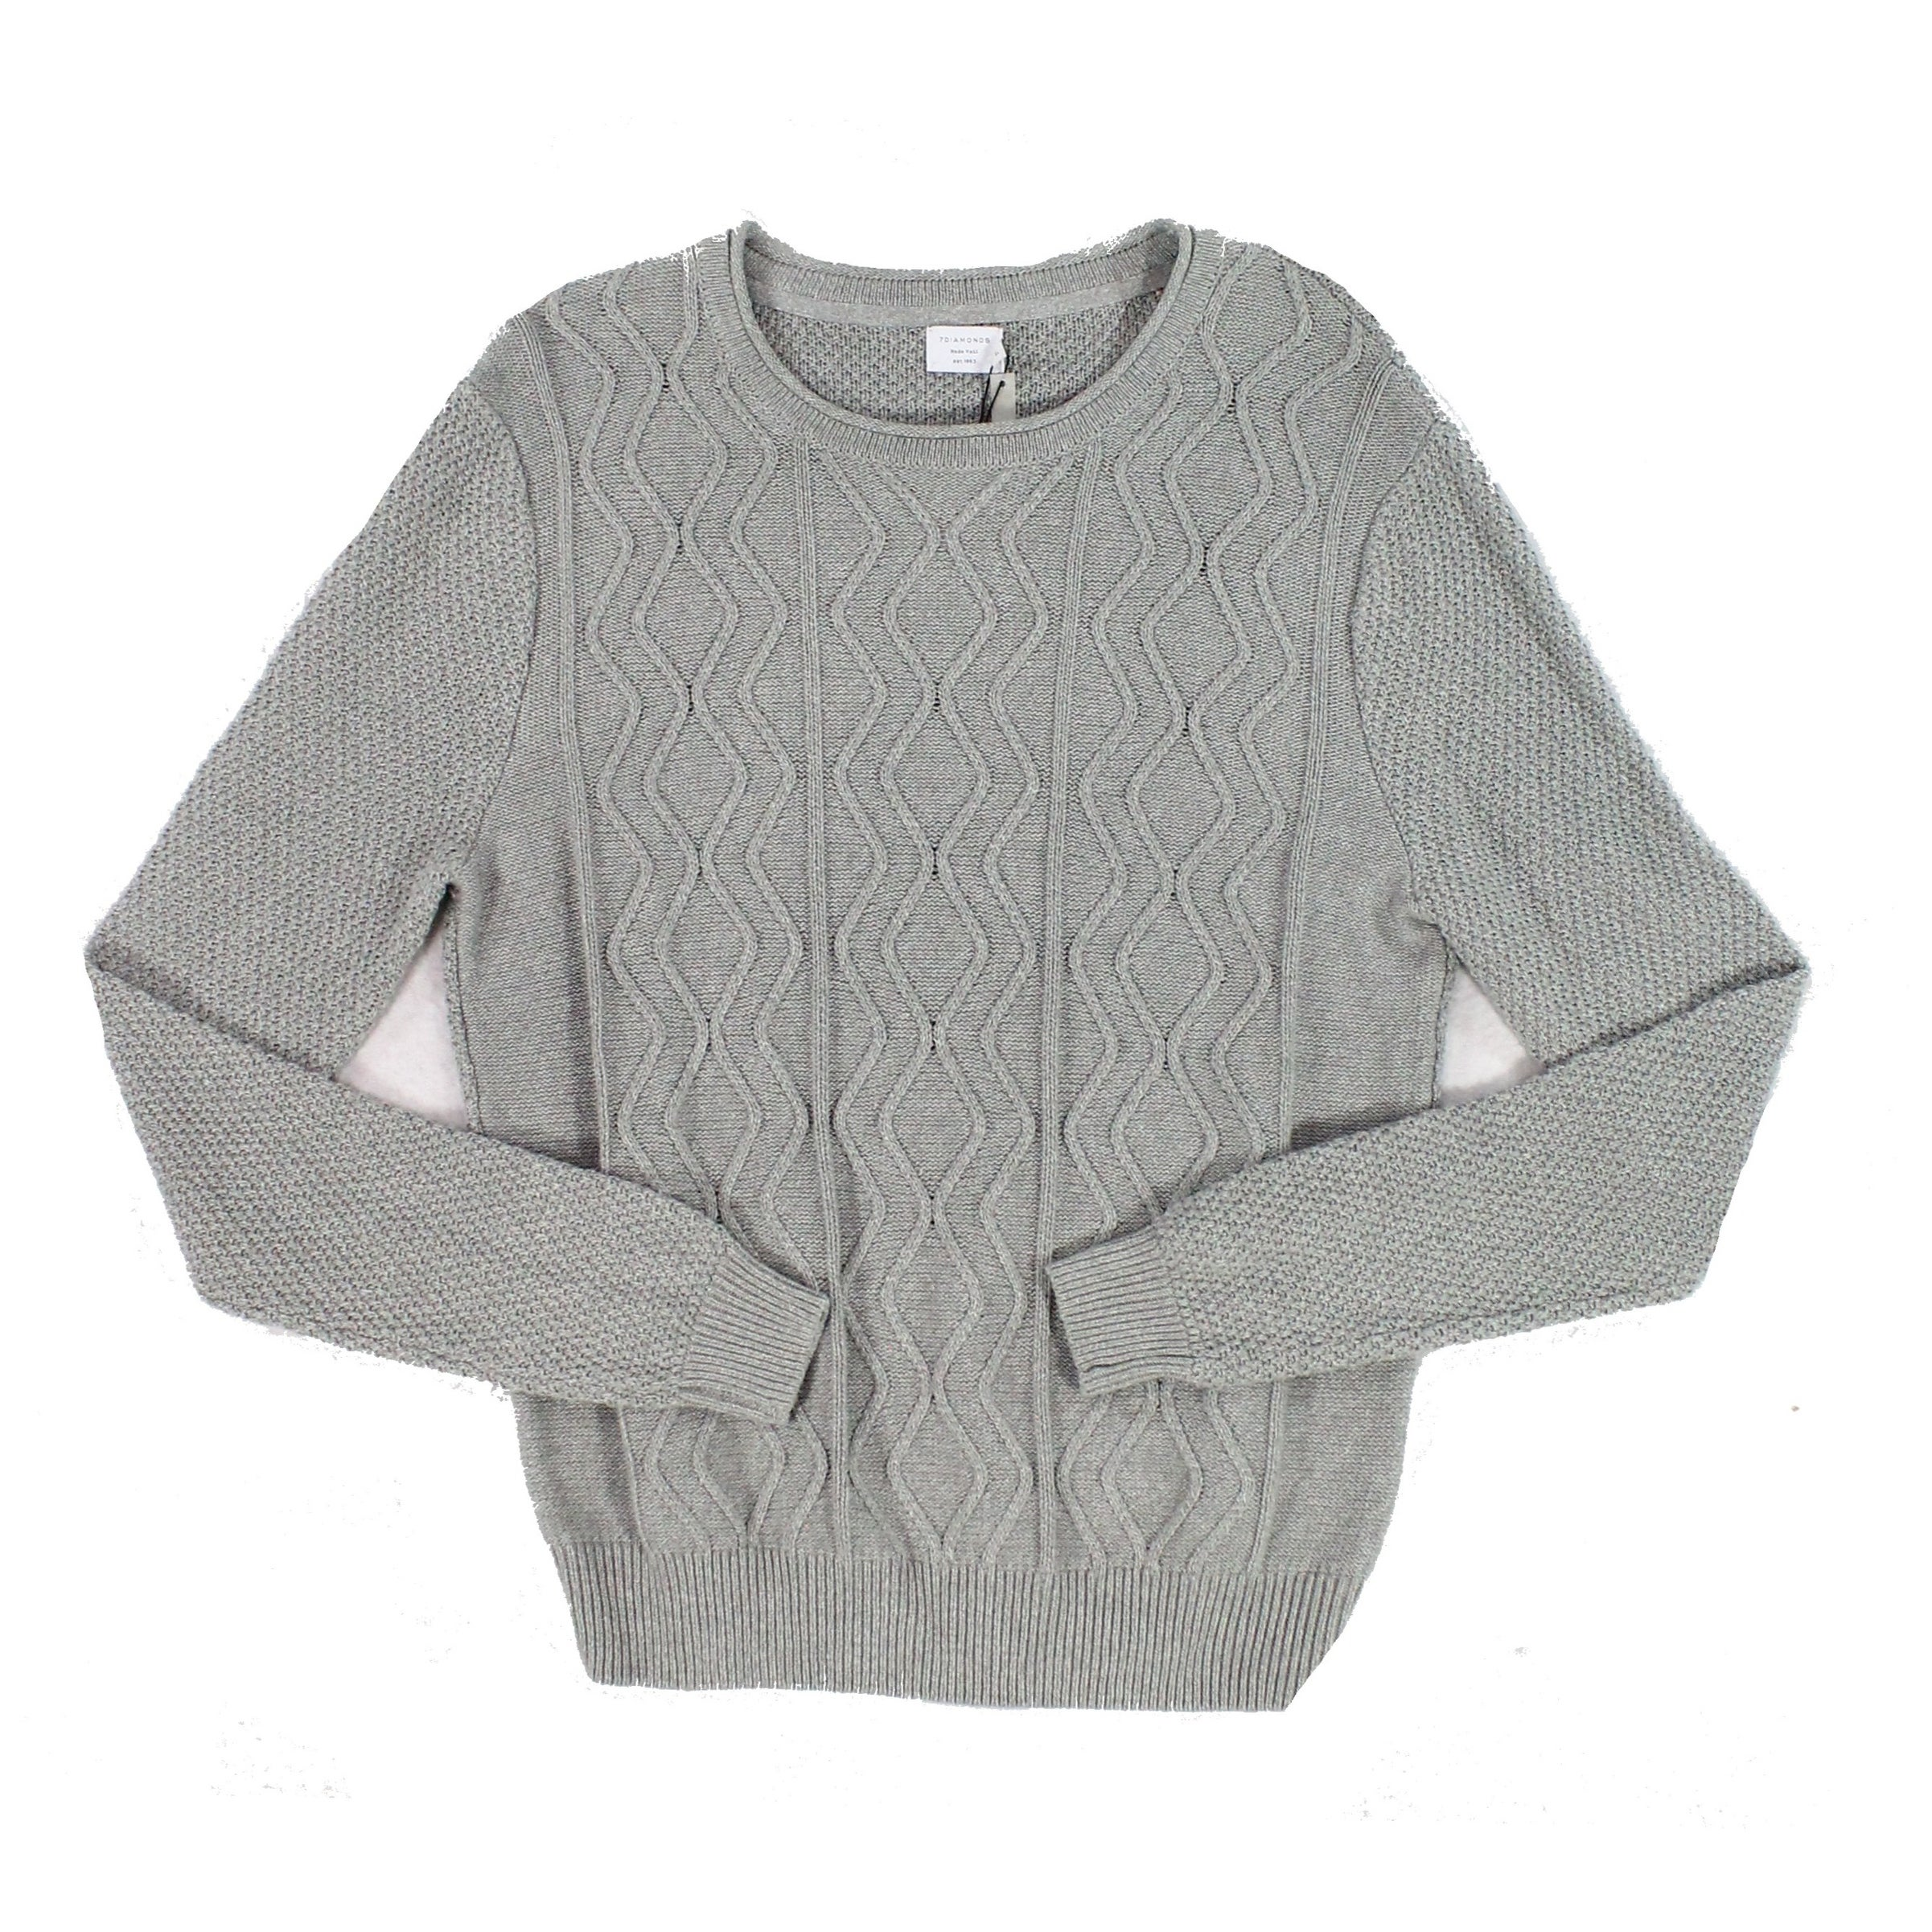 Shop 7 Diamonds Mens Cable Knit Crewneck Pullover Sweater - Free Shipping  On Orders Over  45 - Overstock.com - 26994170 ef3c0d4e8